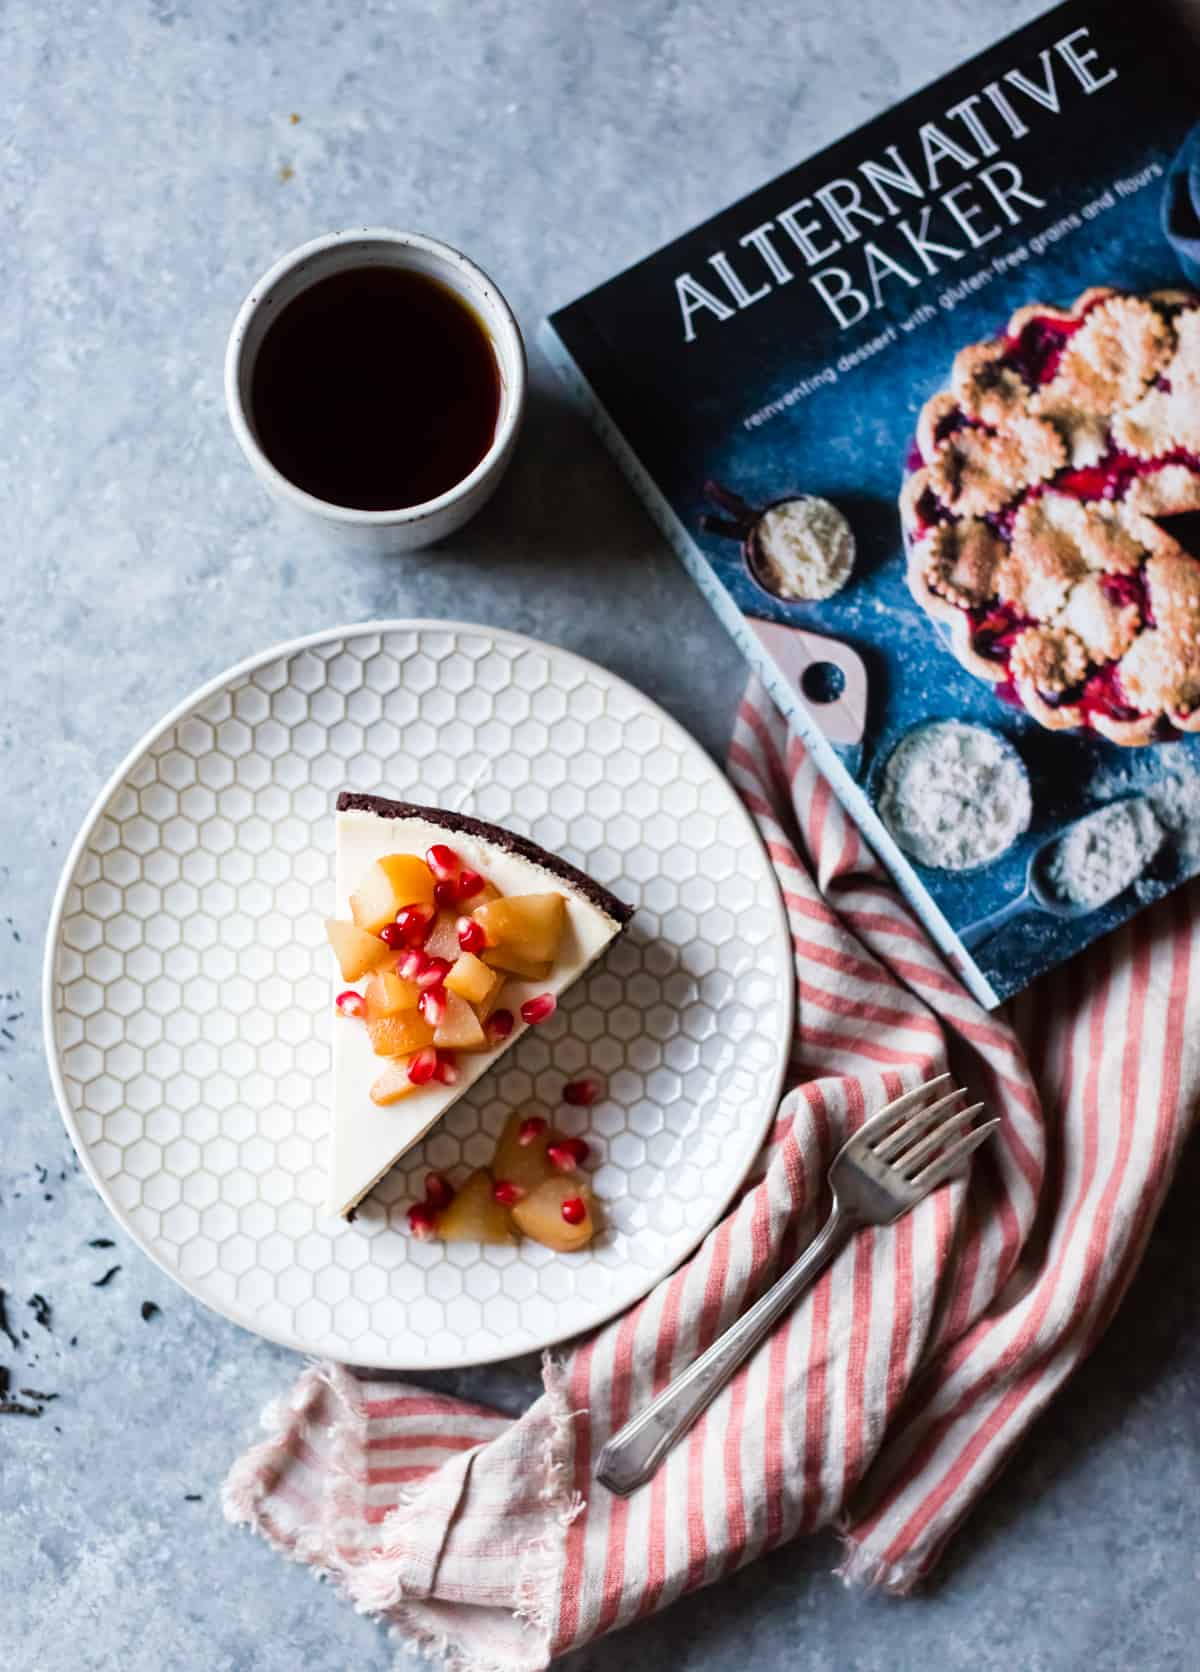 Chocolate Crusted Chèvre Cheesecake with Earl Grey Poached Pears & Pomegranate {gluten-free} and cook book